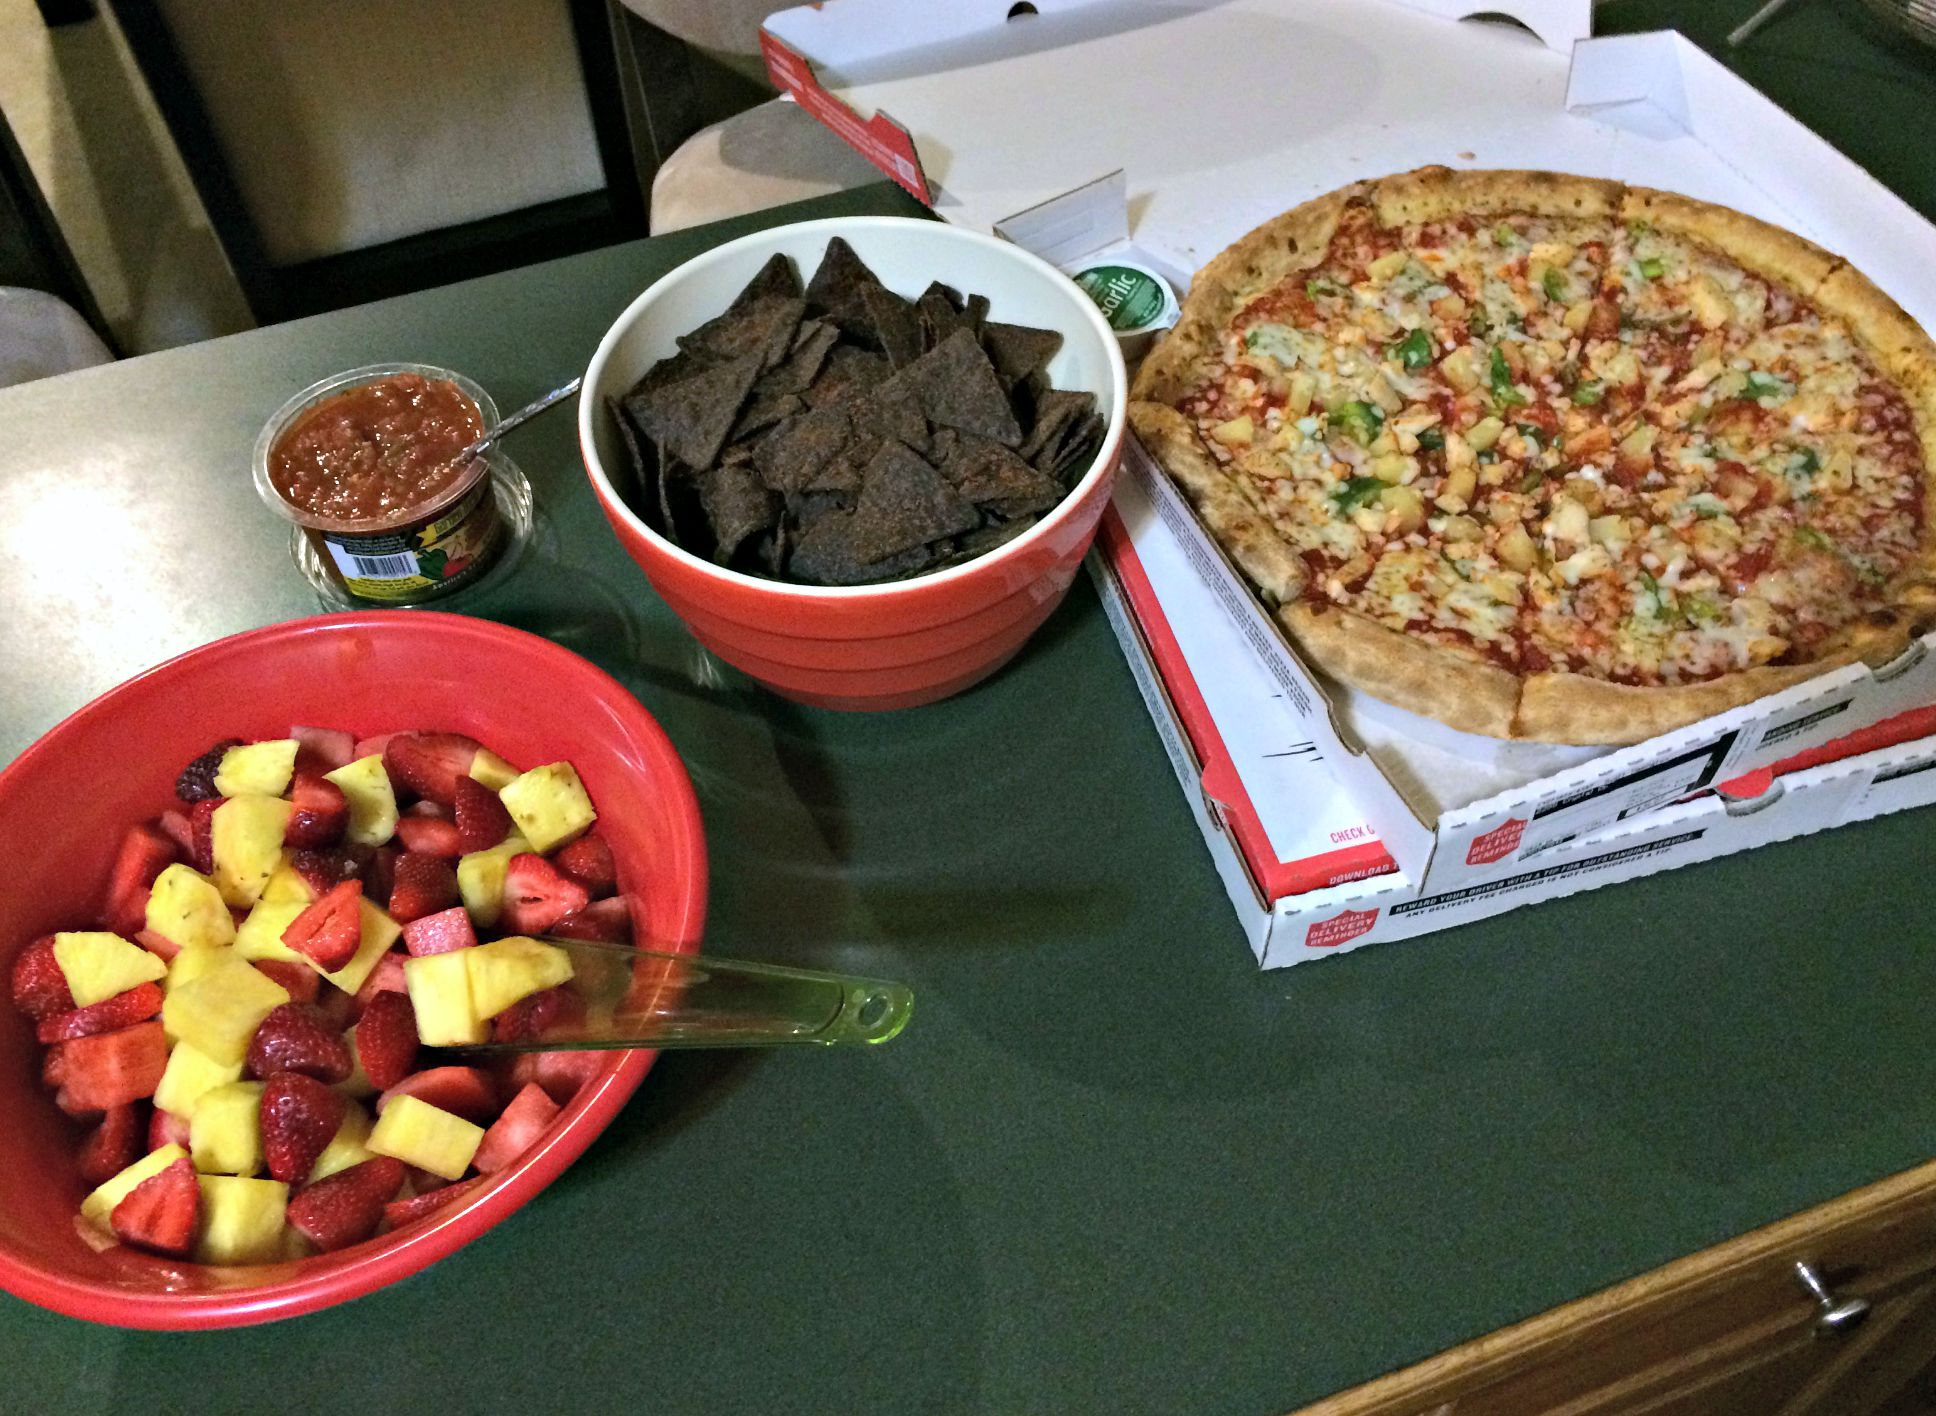 papa johns pizza and snacks